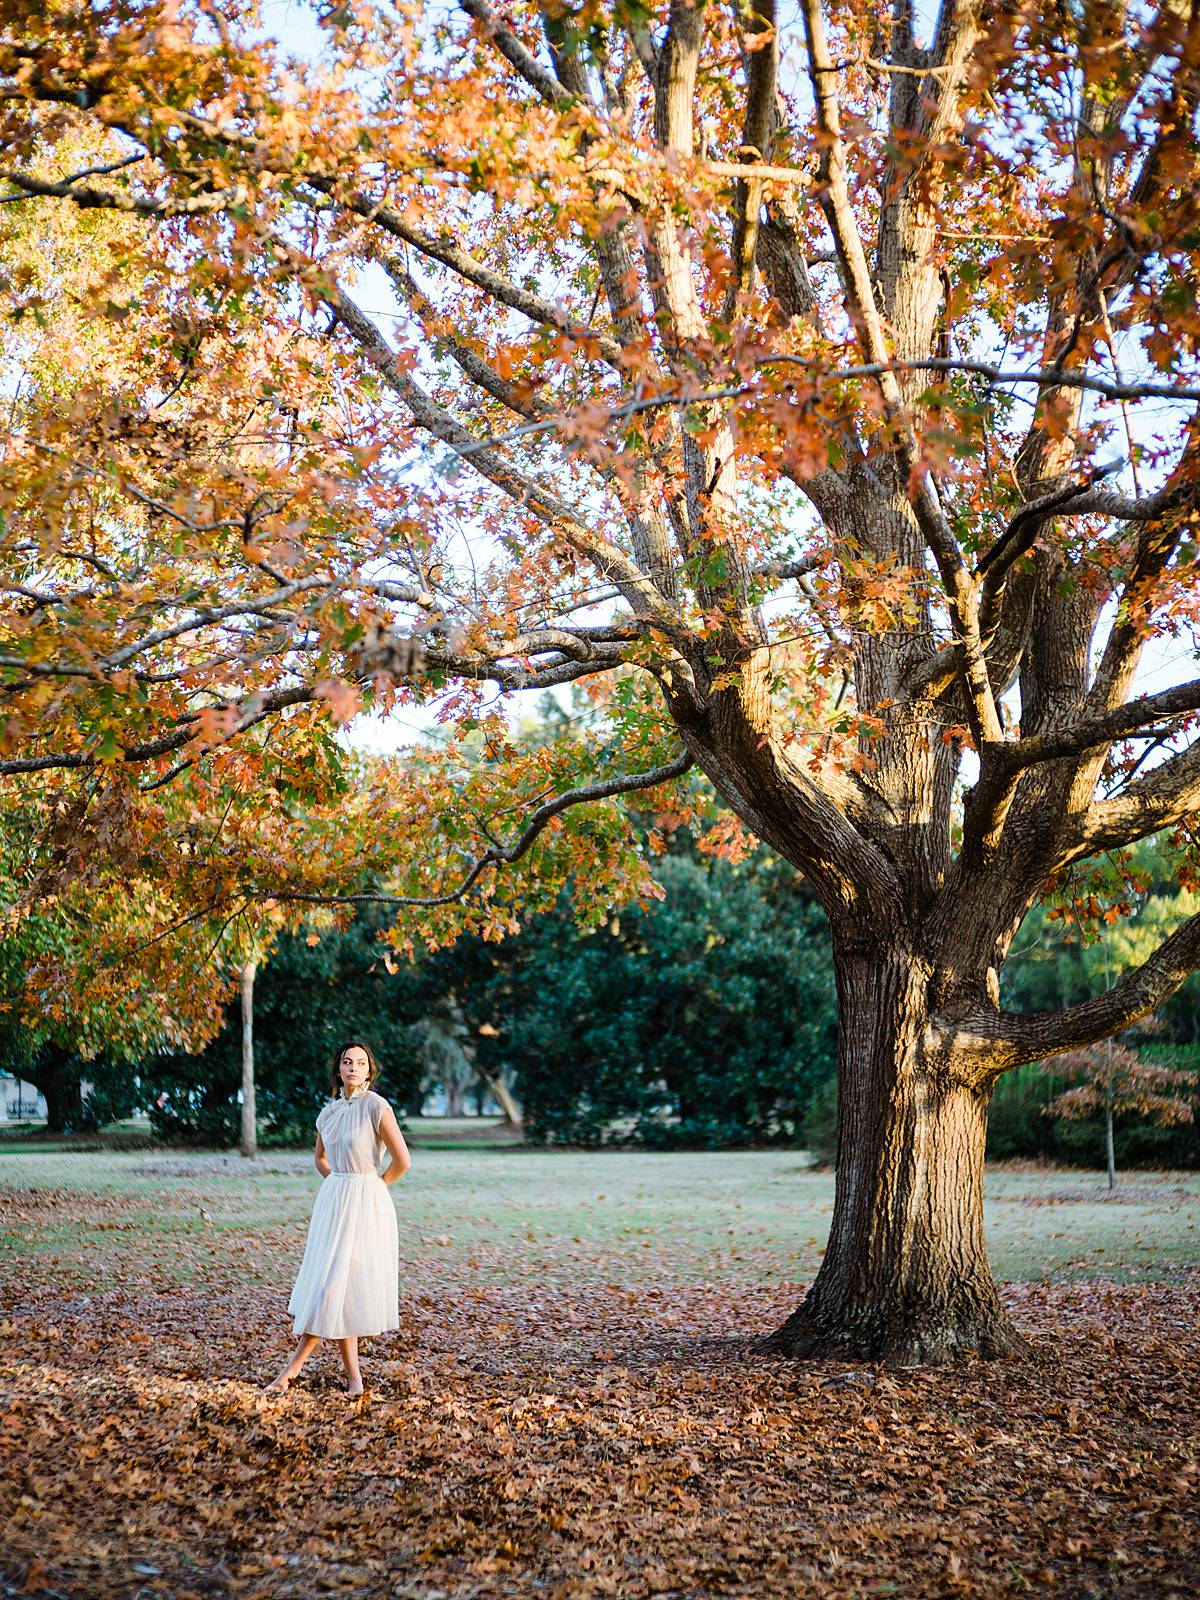 1911 paulina hampton park charleston fall portraits sony leica 00009_web